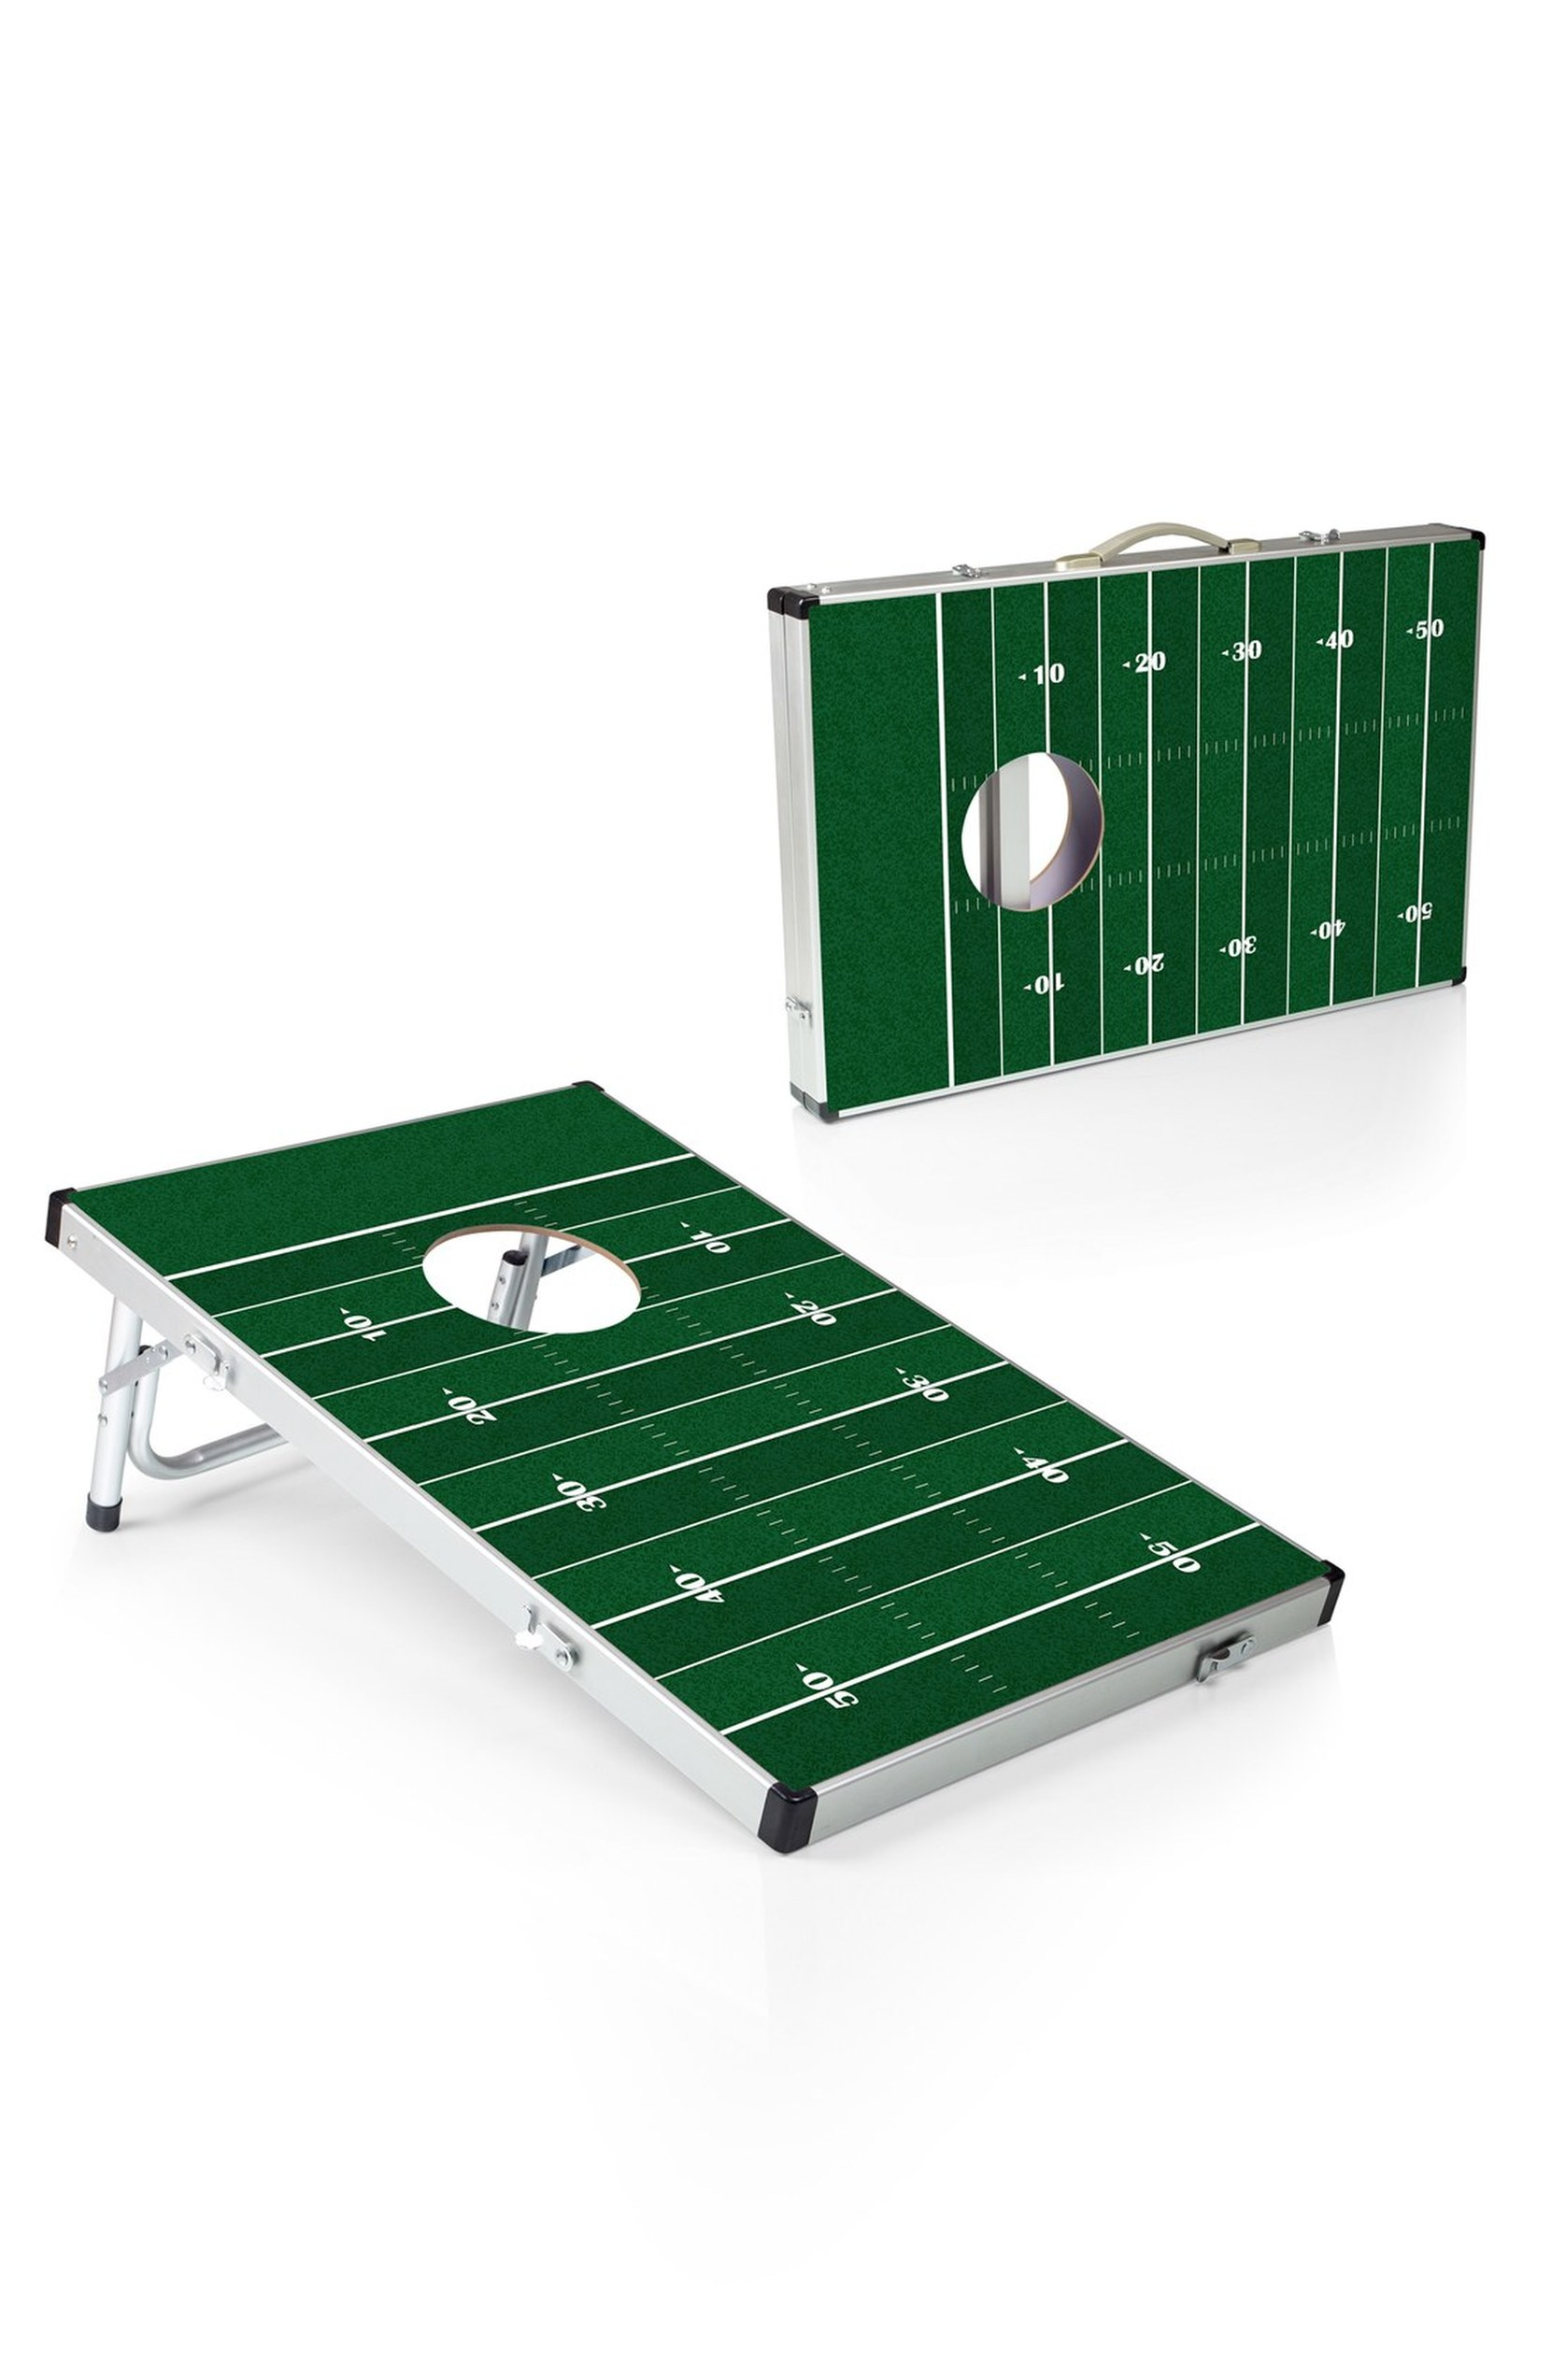 Make dad feel like he's back in the good ole days of college again. He will get hours of outdoor fun with this classic game modeled after a football field. To win kid of the year, throw in a 6 pack. $99.95 (Image: Amazon)